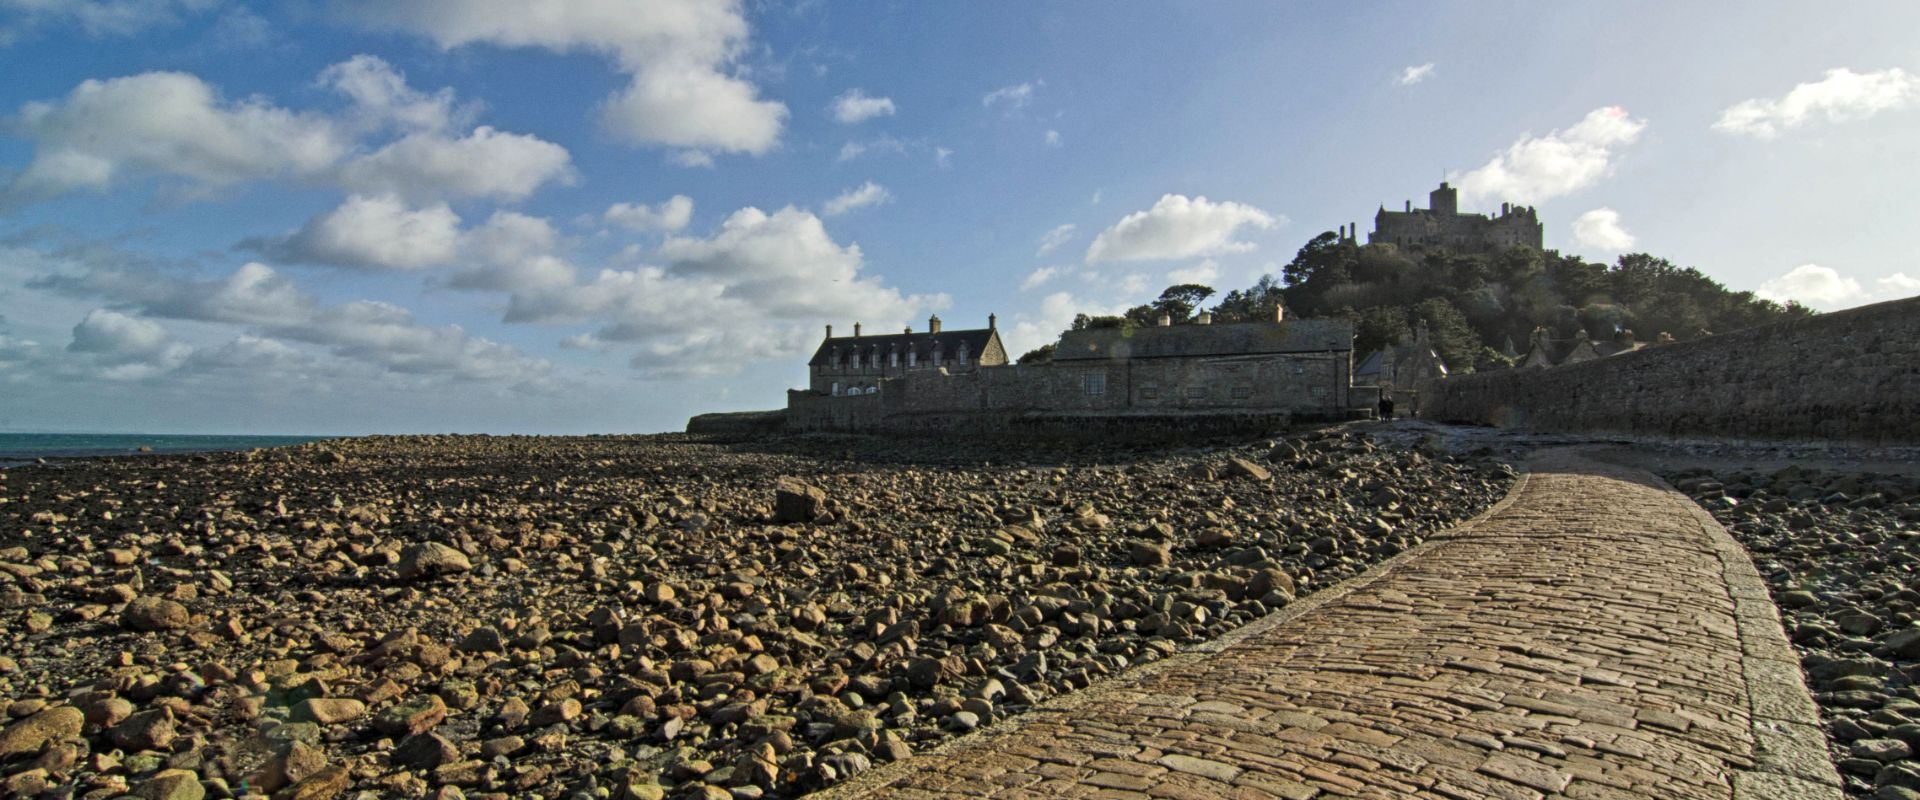 The tidal causeway leading to St. Michael's Mount in Cornwall